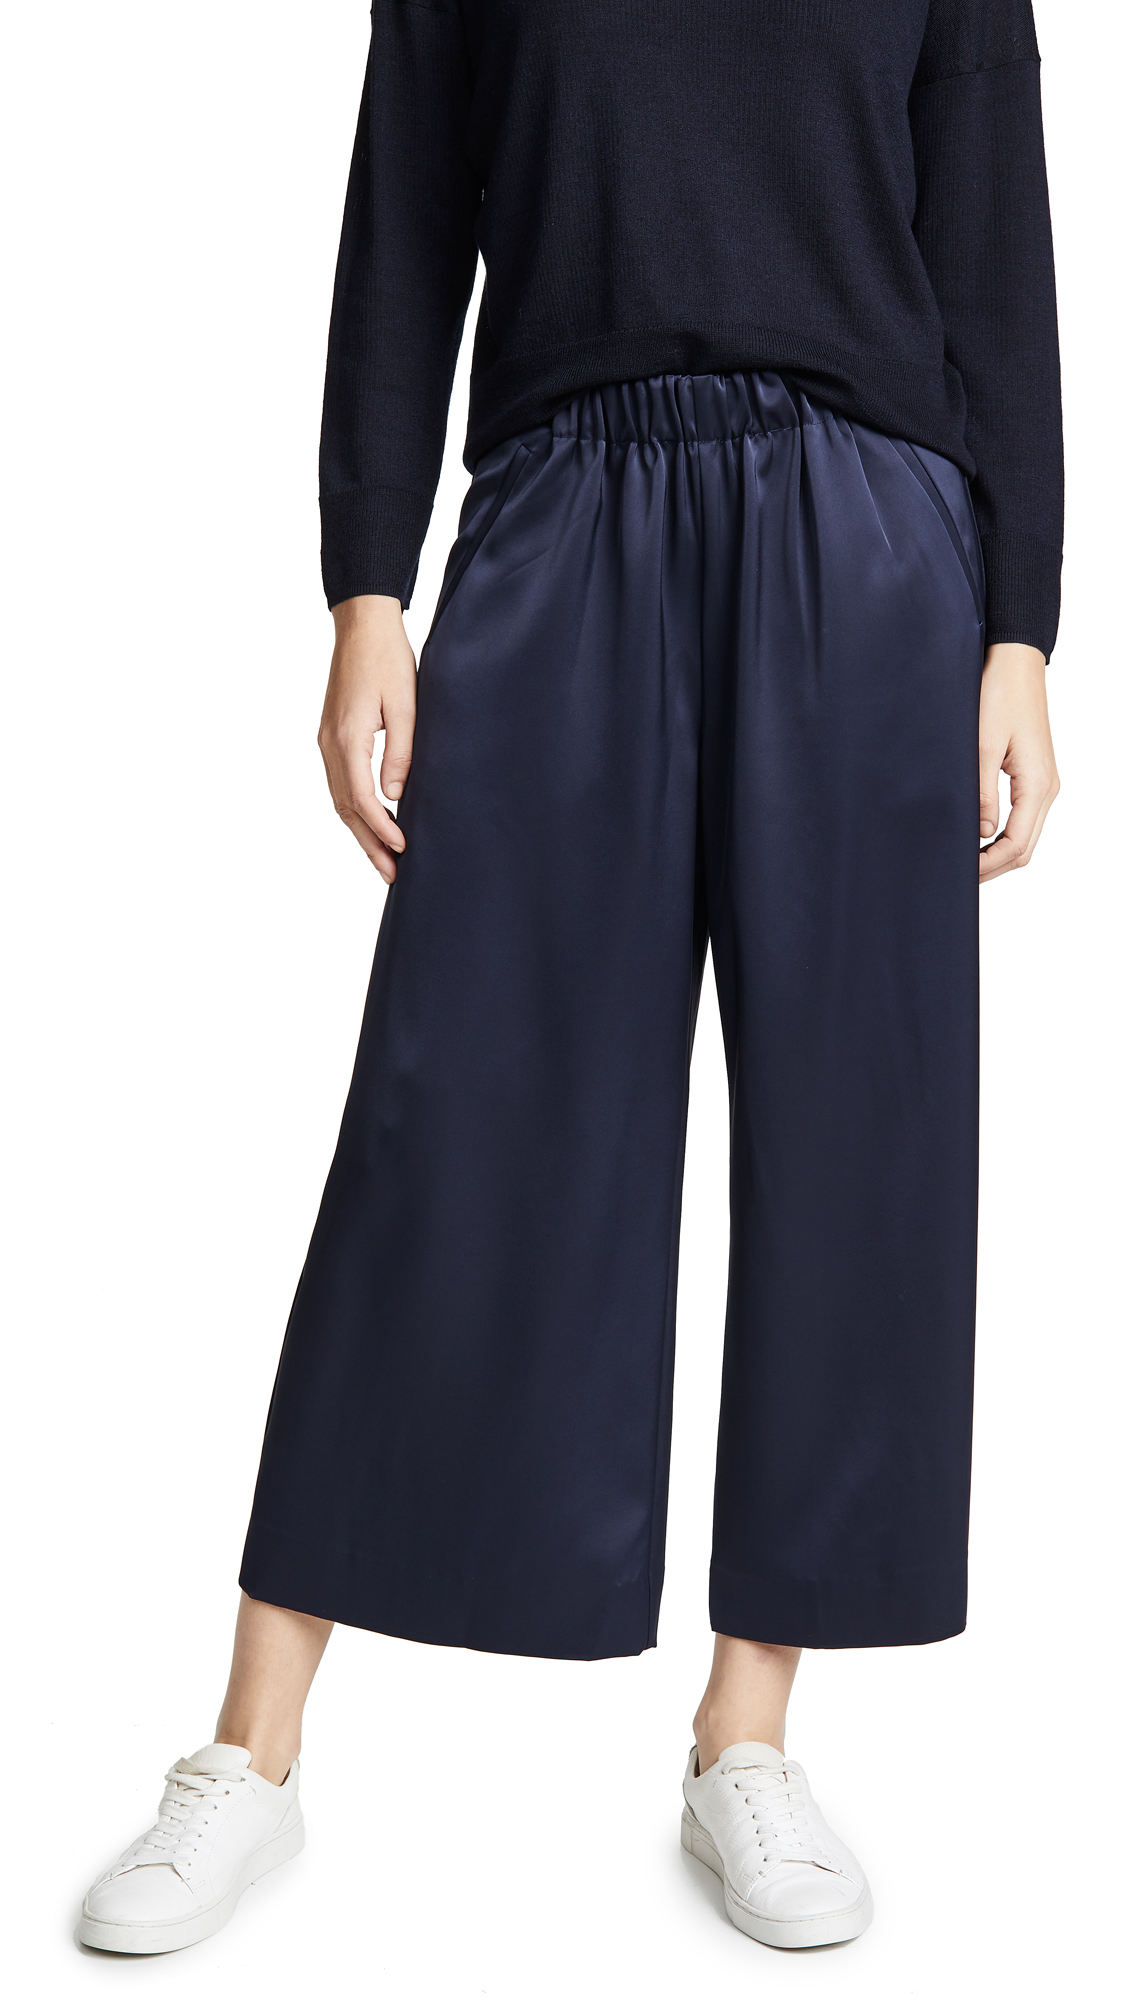 AYR The Blush Pants in Deep Marine